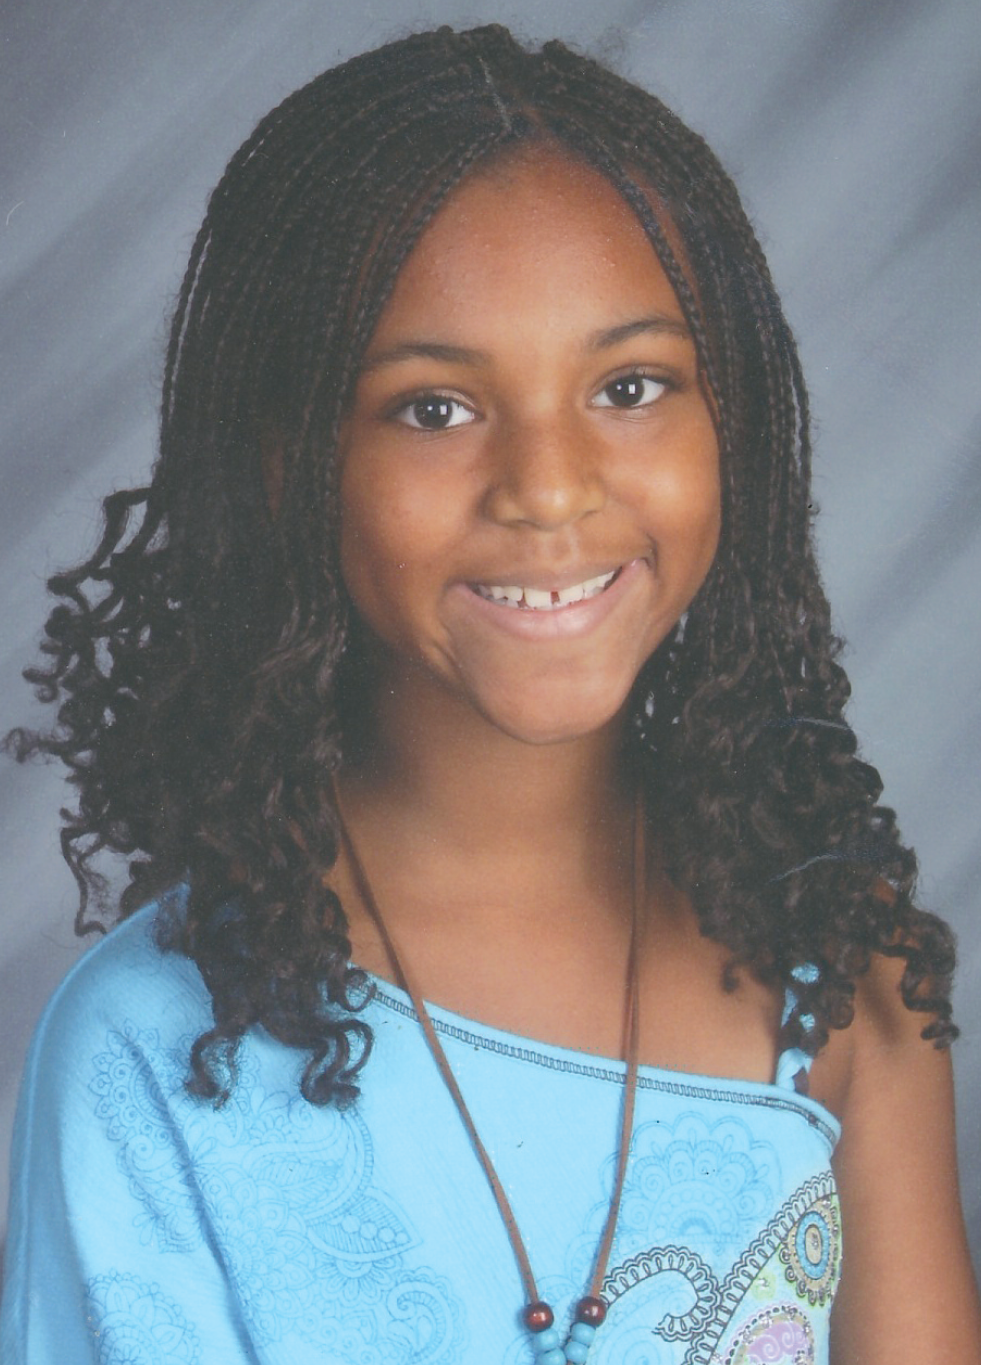 10 Year Old Author Nazhia Reynolds